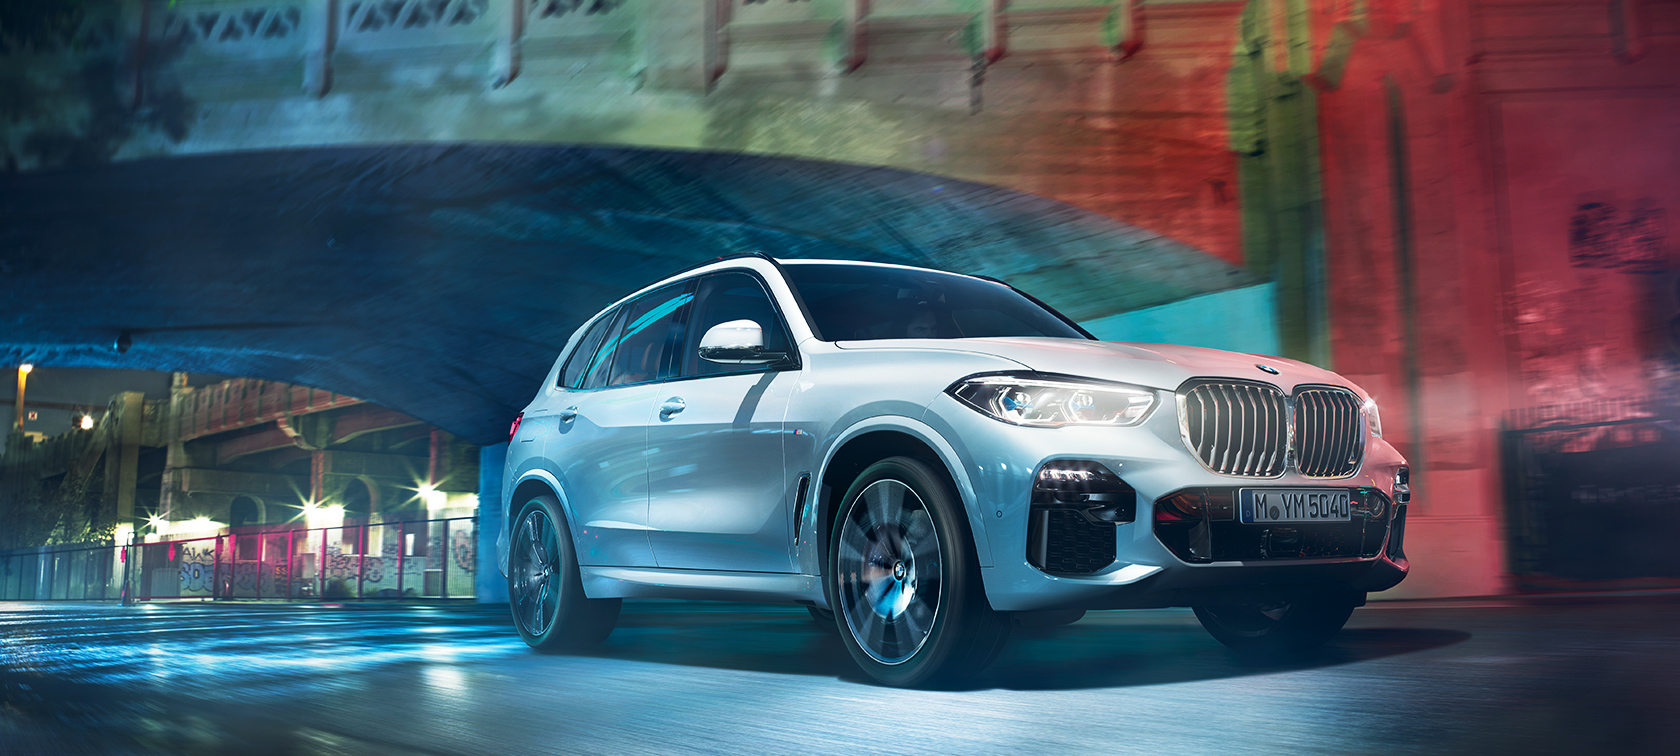 The all-new BMW X5